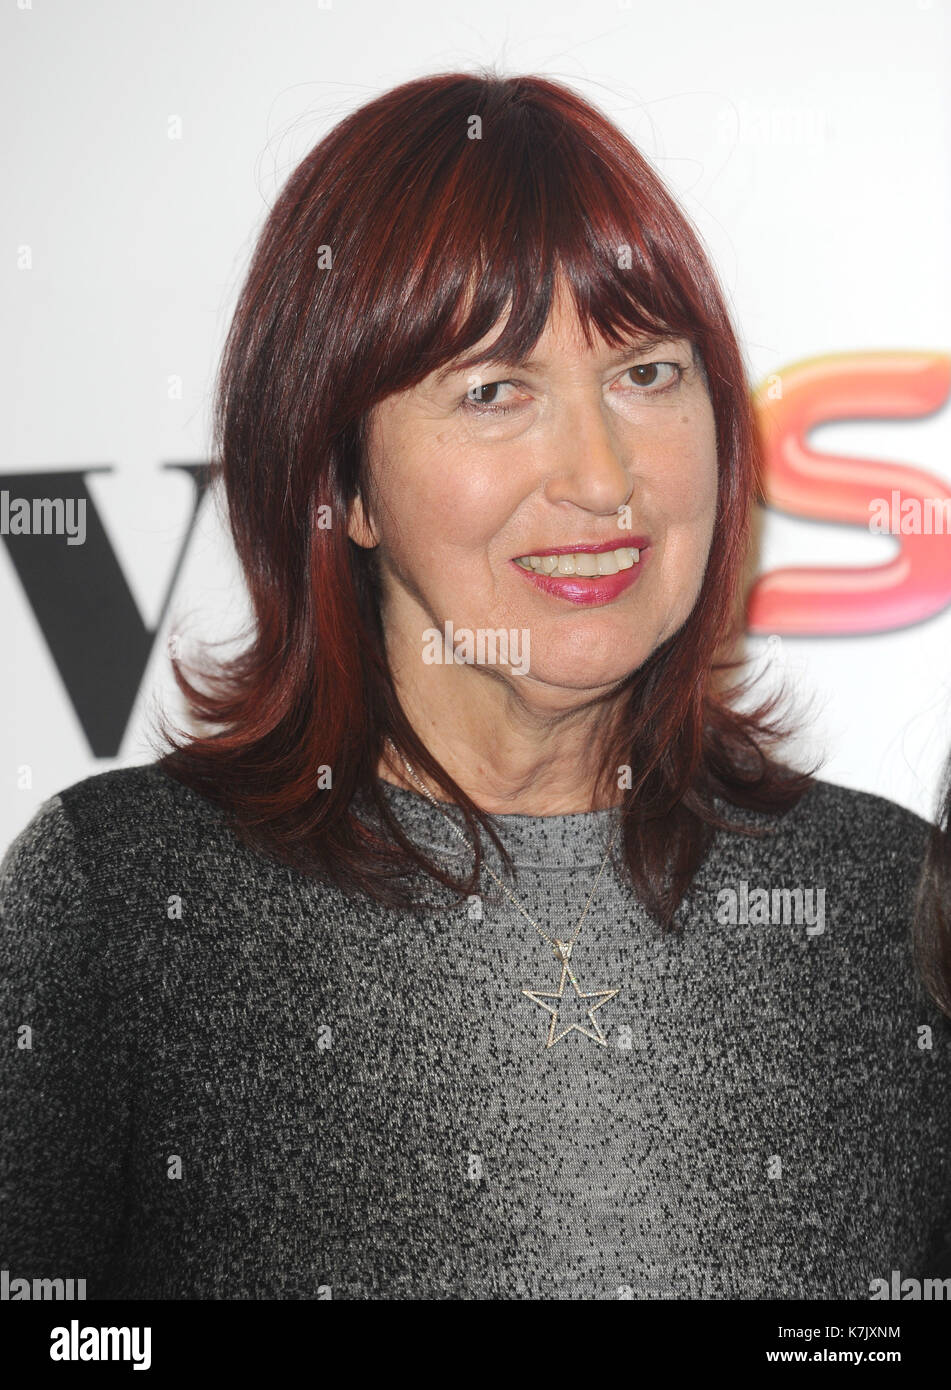 Photo Must Be Credited ©Kate Green/Alpha Press 079965 4/12/2015 Janet Street Porter Women In Film and TV Awards 2015 Park Lane Hilton London - Stock Image